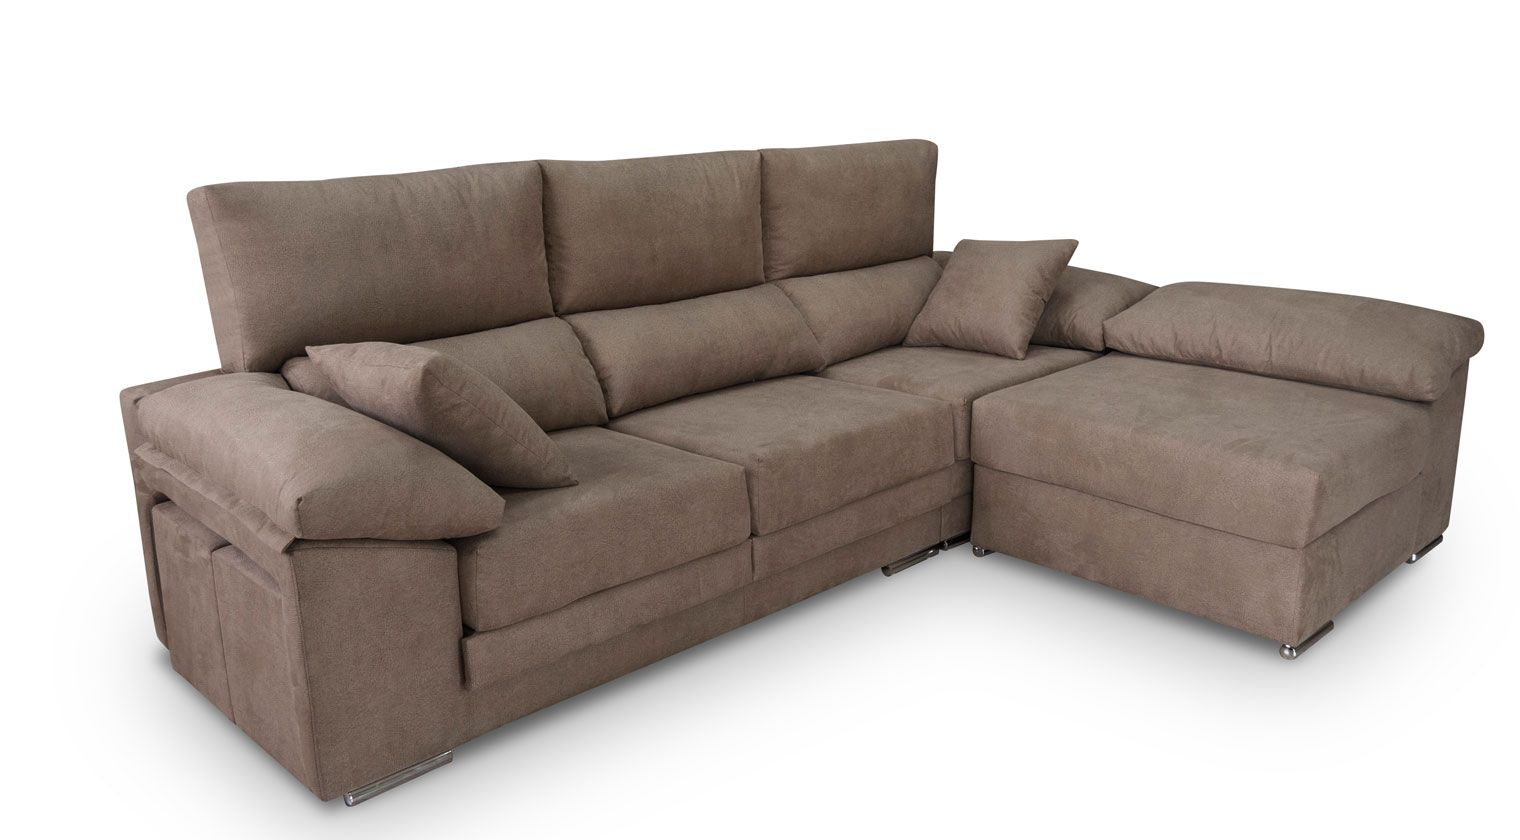 Sofas chaise longue baratos almeria sofa menzilperde net for Sofa cama nido barato